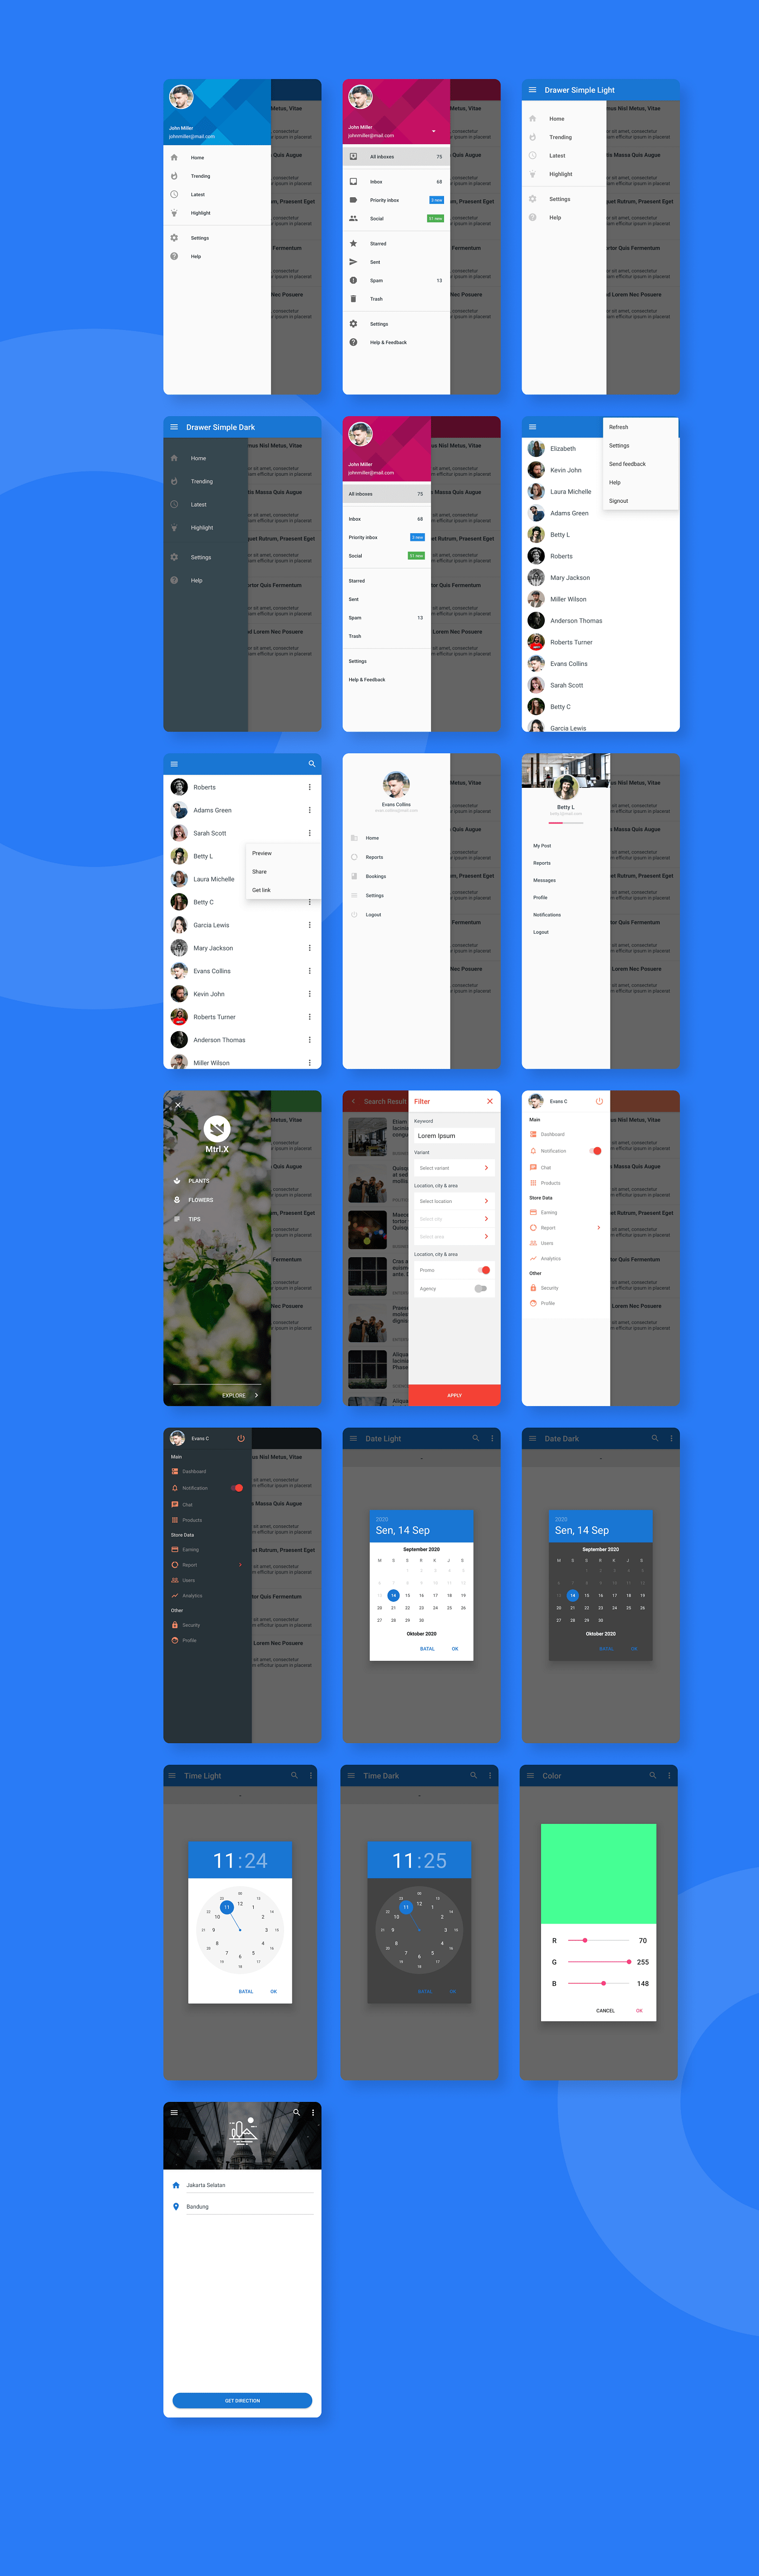 MaterialX - Android Material Design UI Components 2.7 - 18